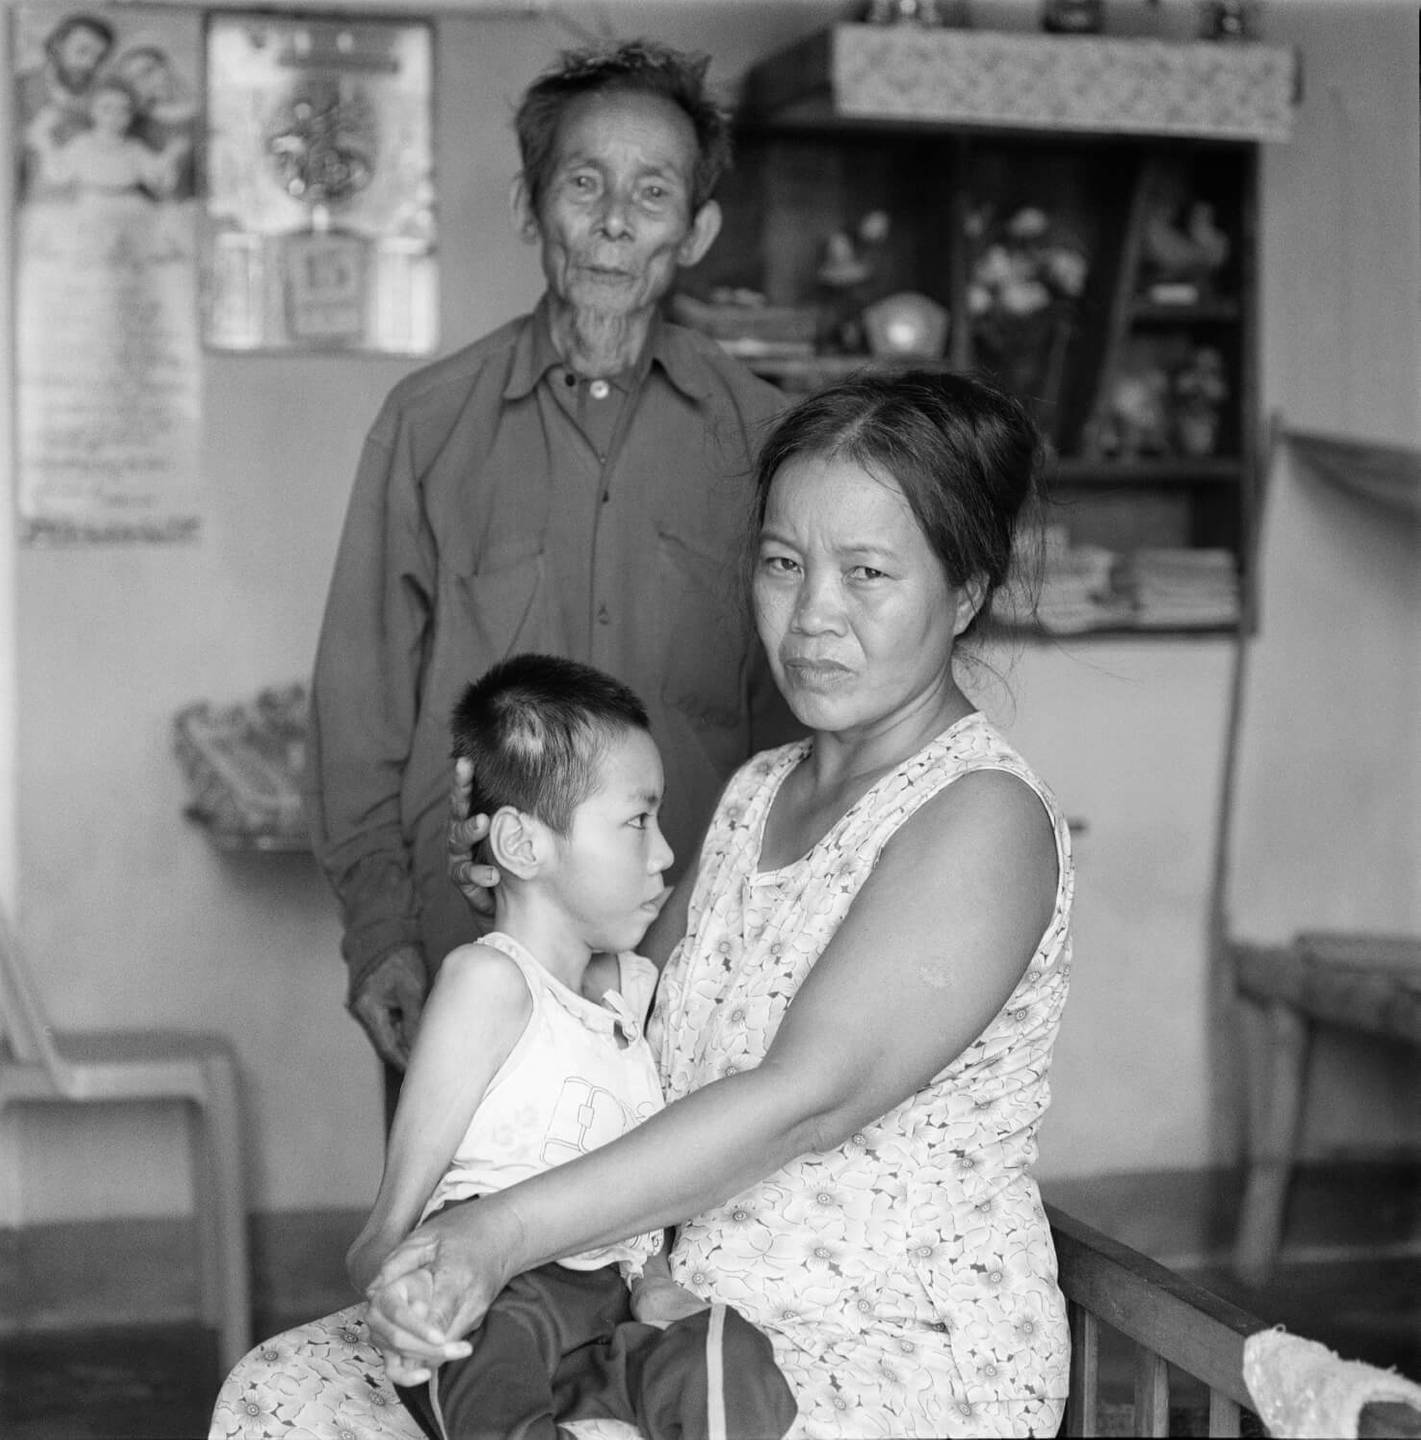 An older Asian man, a middle-aged woman, and presumably her son, deformed and sitting on her lap.